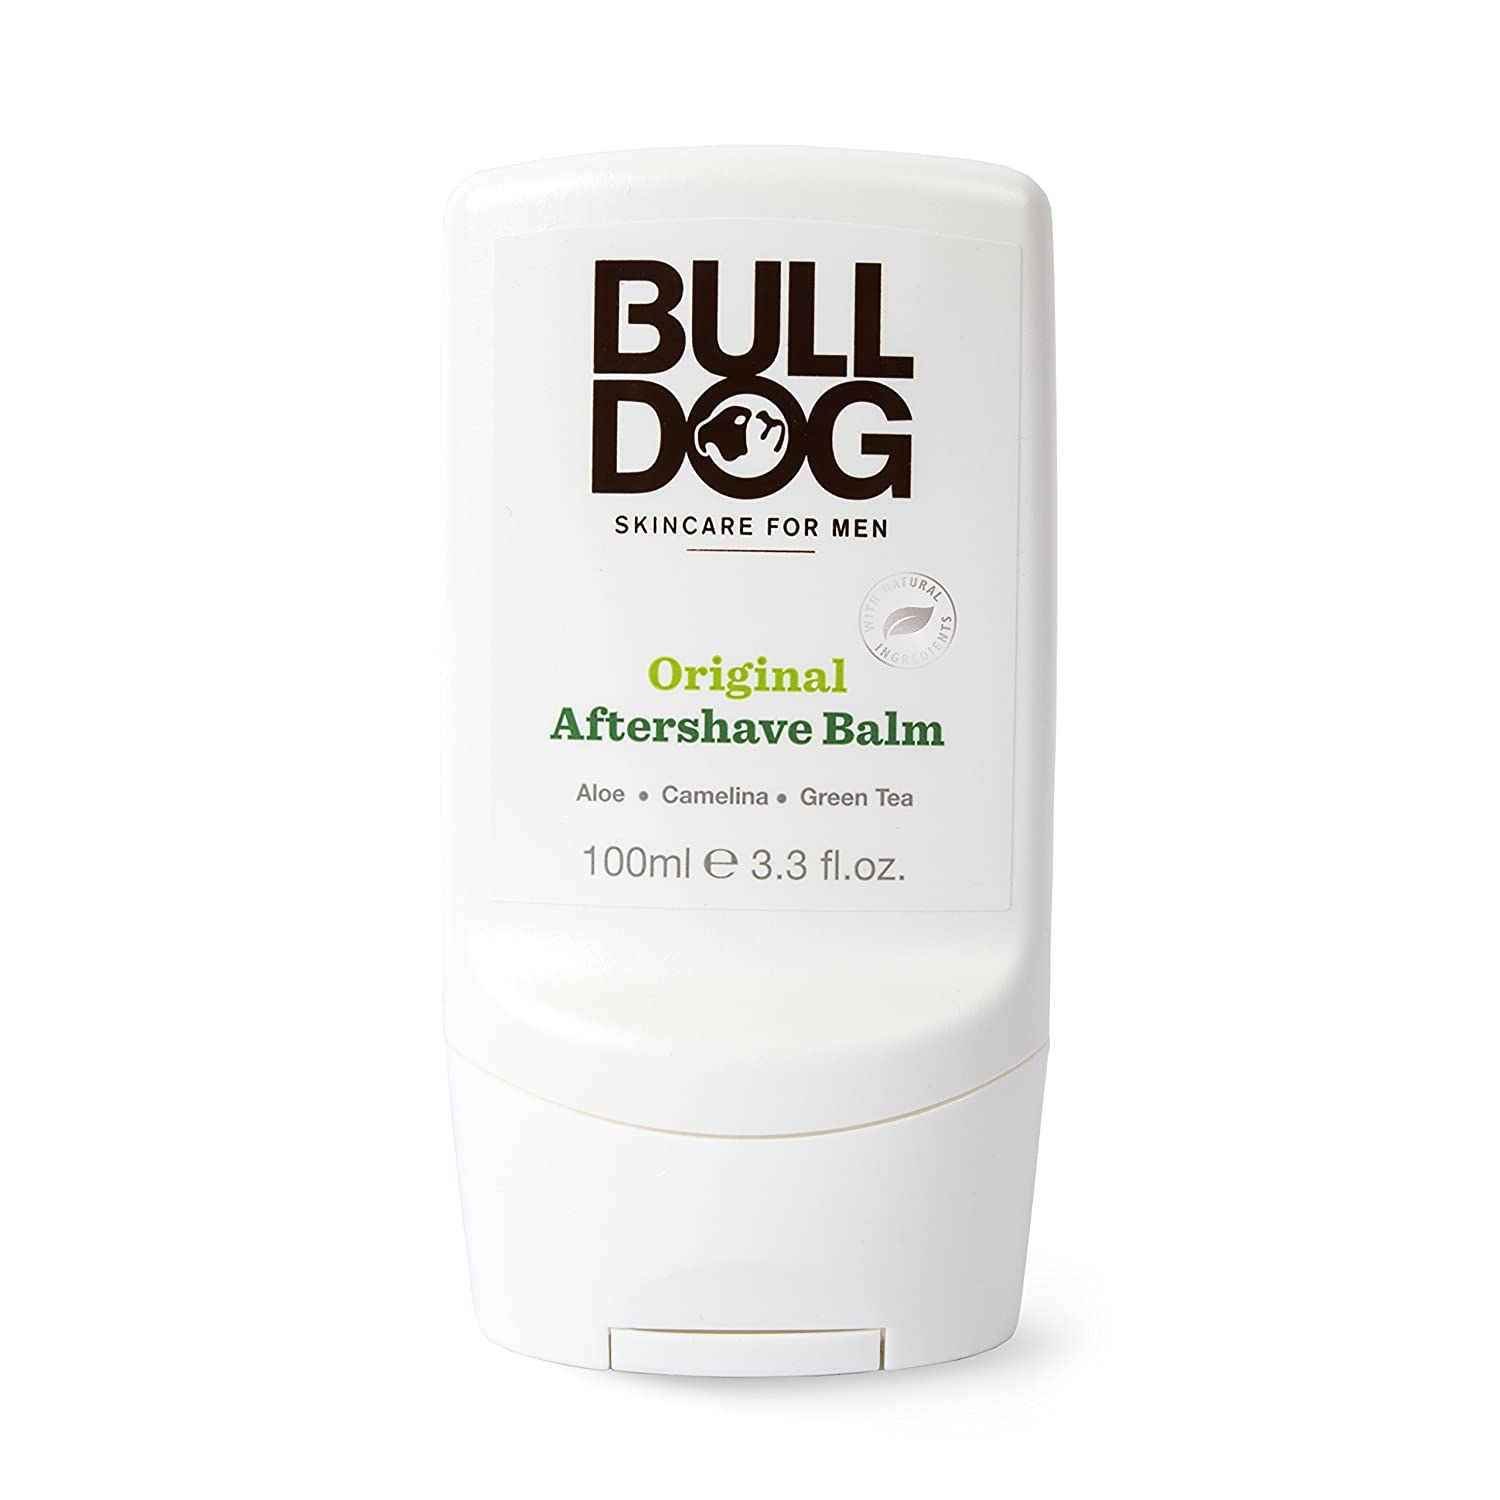 Bulldog Original After Shave Balm 100ml 78995